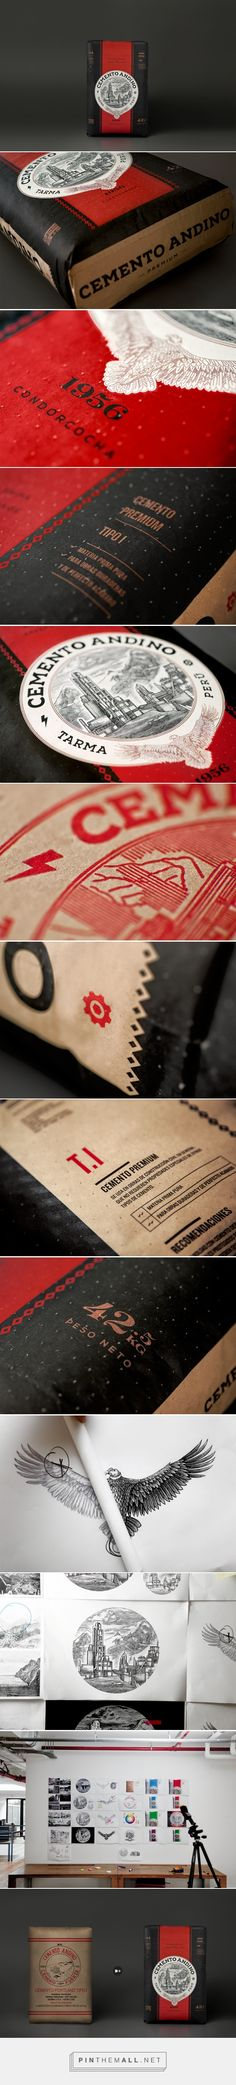 Cemento Andino Cement Packaging redesigned by Brandlab (Peru) - http://www.packagingoftheworld.com/2016/06/cemento-andino.html